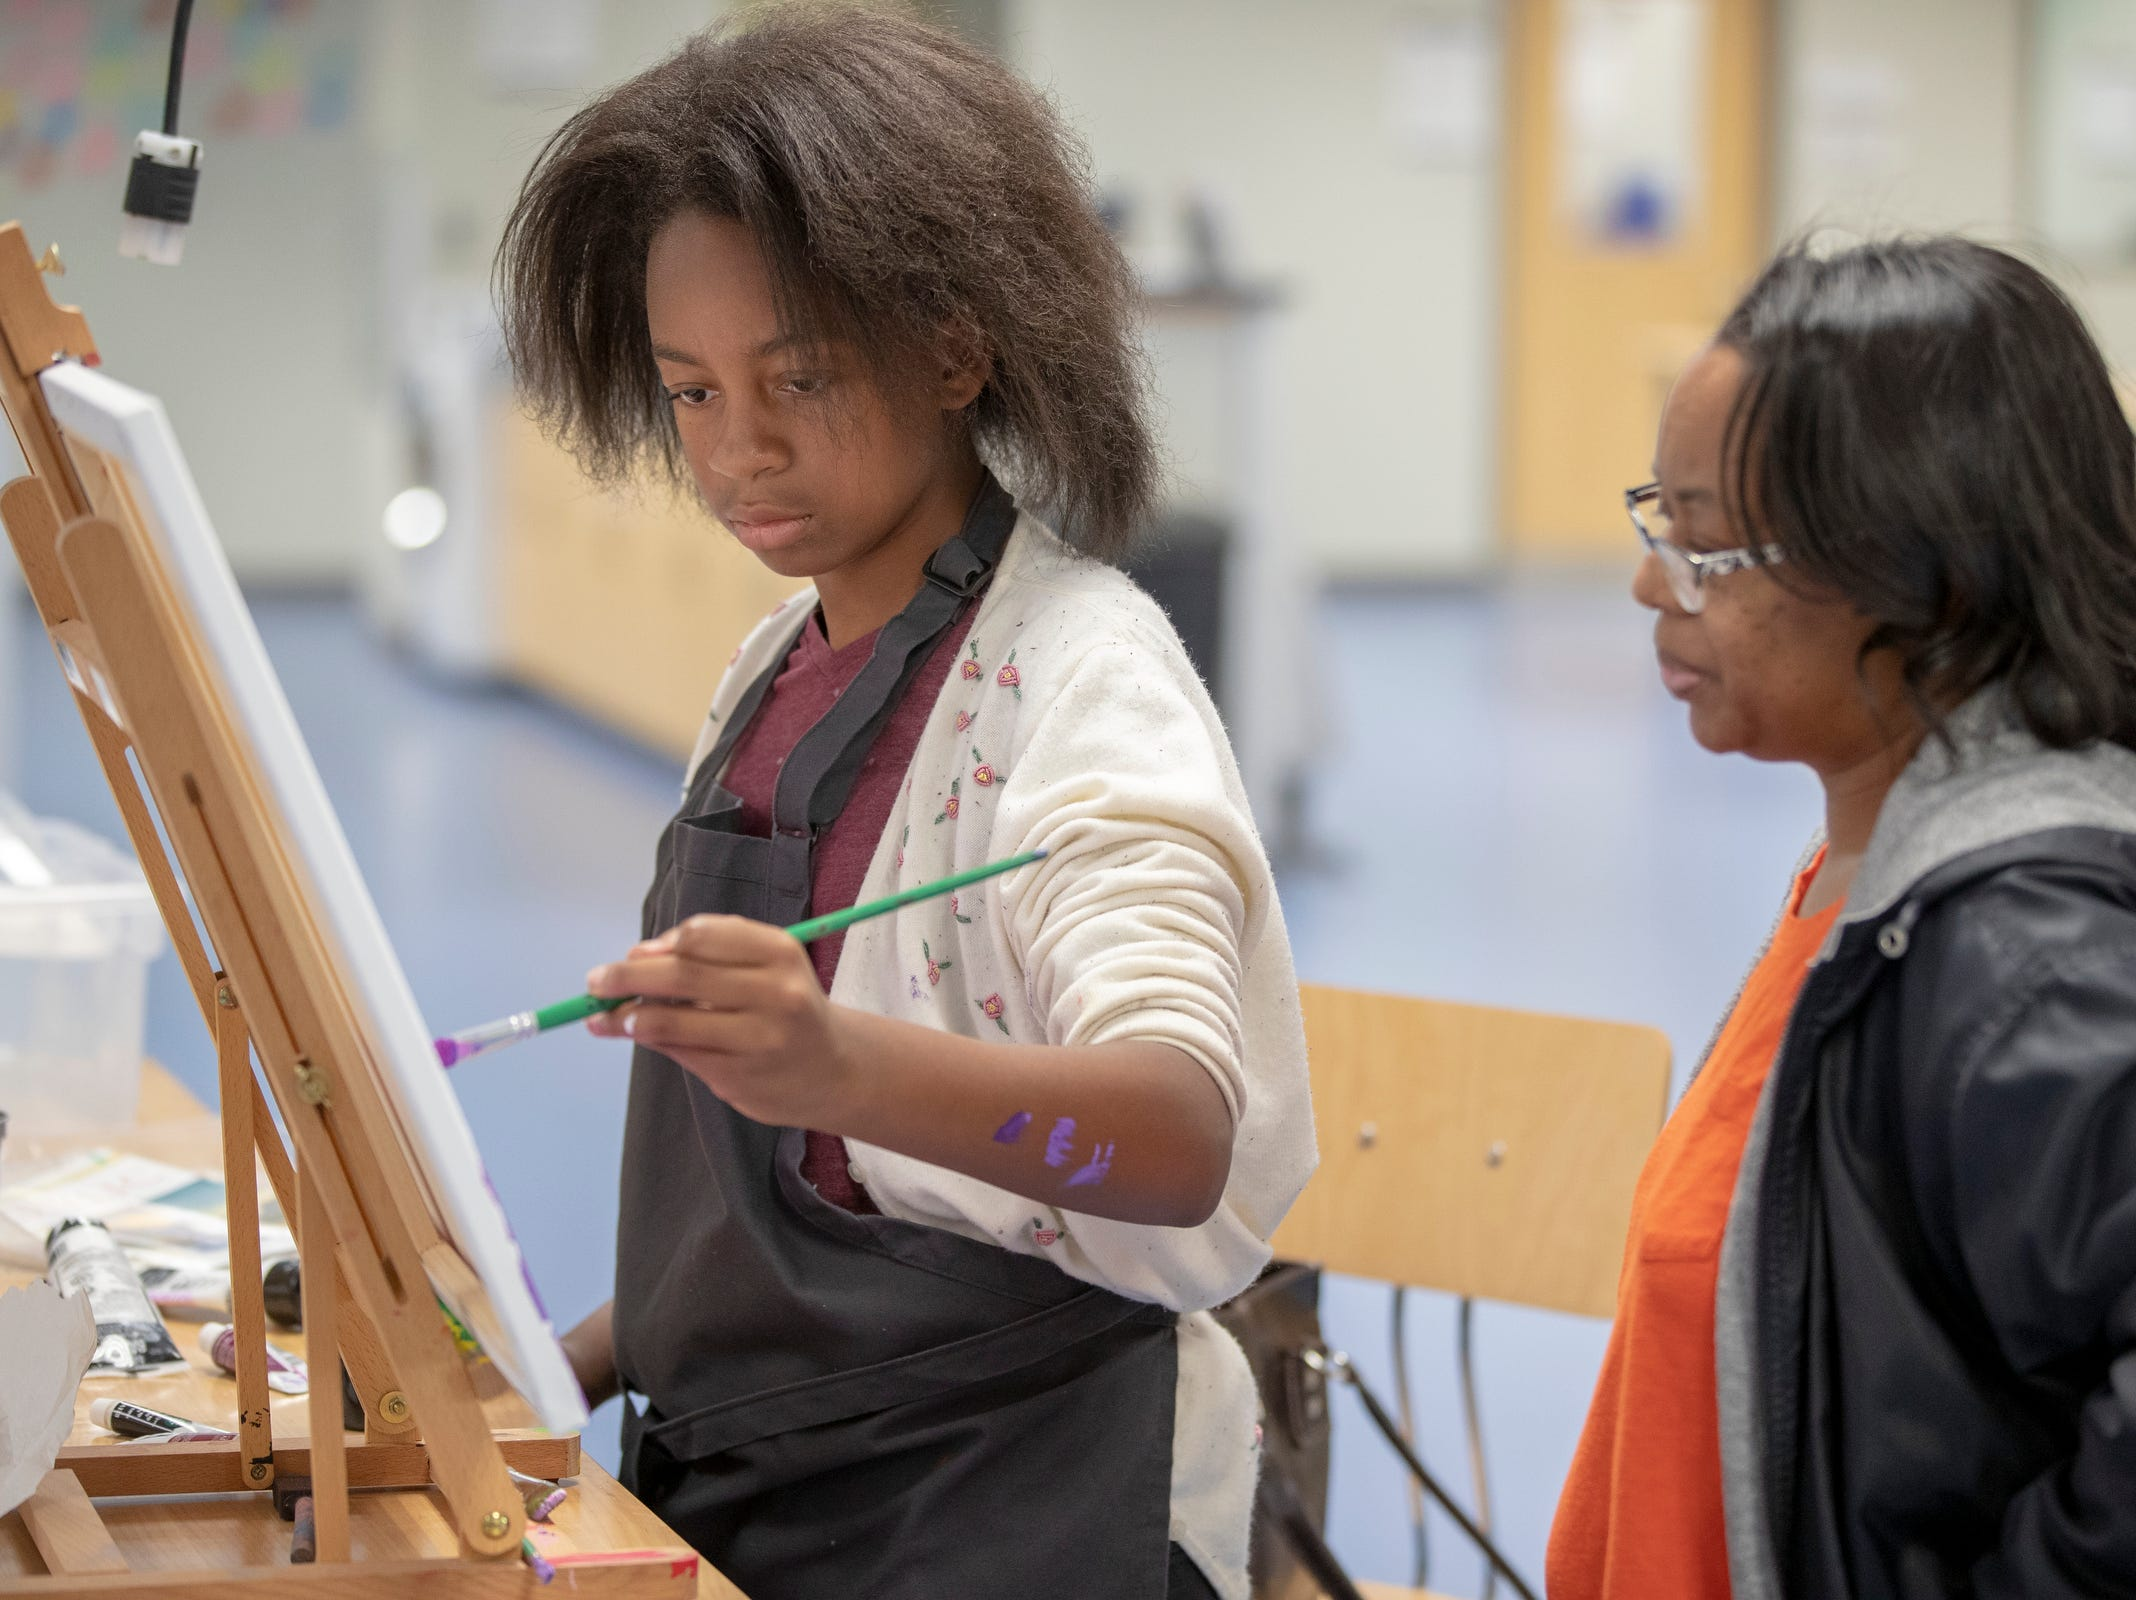 Amora Dues, 11, Fishers, works on a painting as her mother Cherie Dues watches, at Ignite, a new shared work space for artists and creative people at Hamilton East Public Library in Fishers, Sunday, Nov. 4, 2018. The facility is open during regular open hours and has spaces for pottery, videography, 3D printing, and a host of other activities.